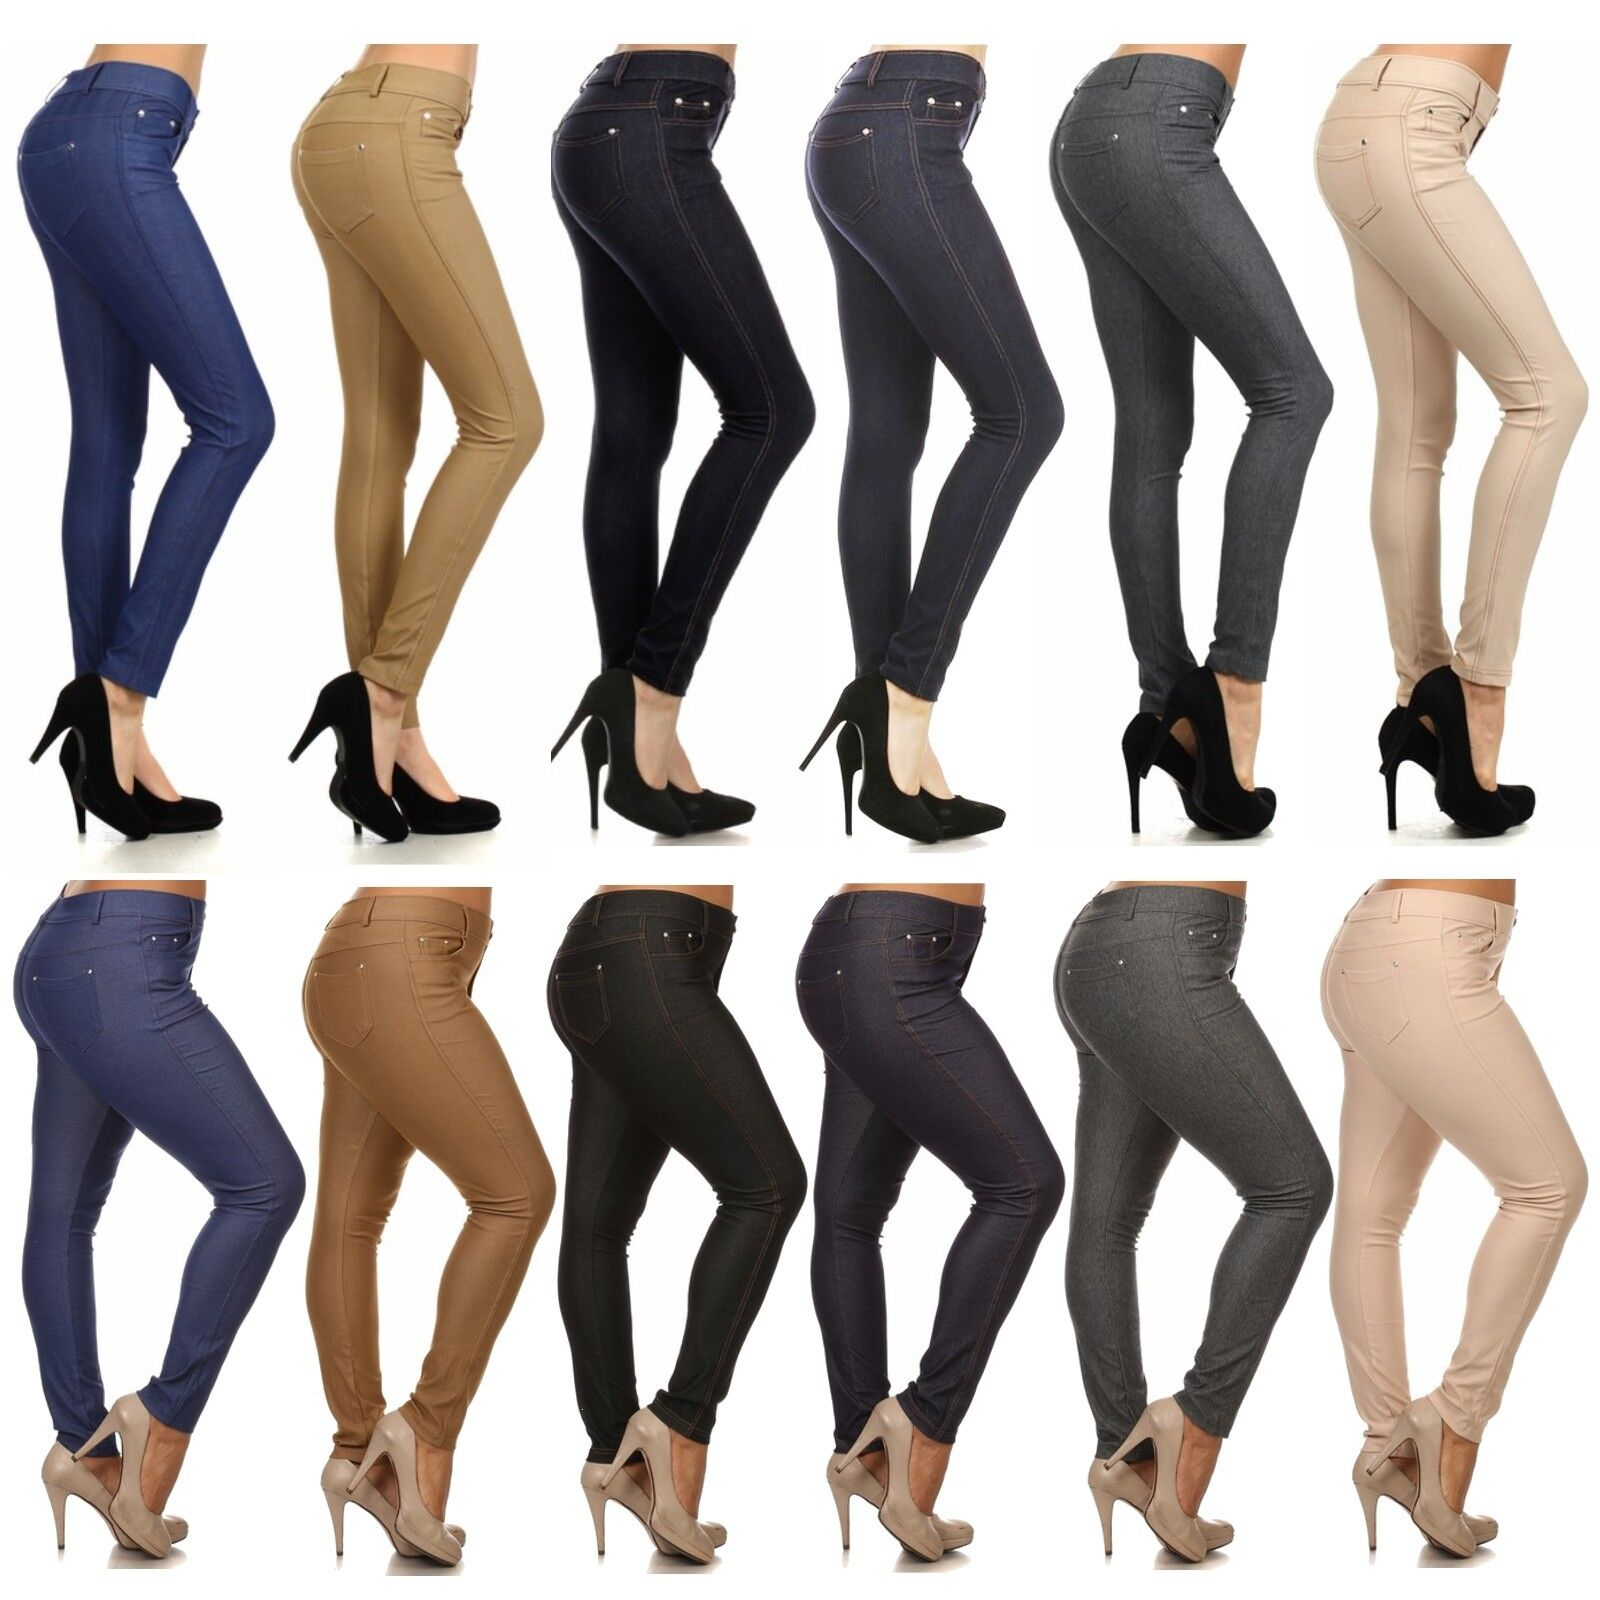 $14.99 - Women Fashion Slim Fit seamless Jeggings colors stretch pants size S to 3XL